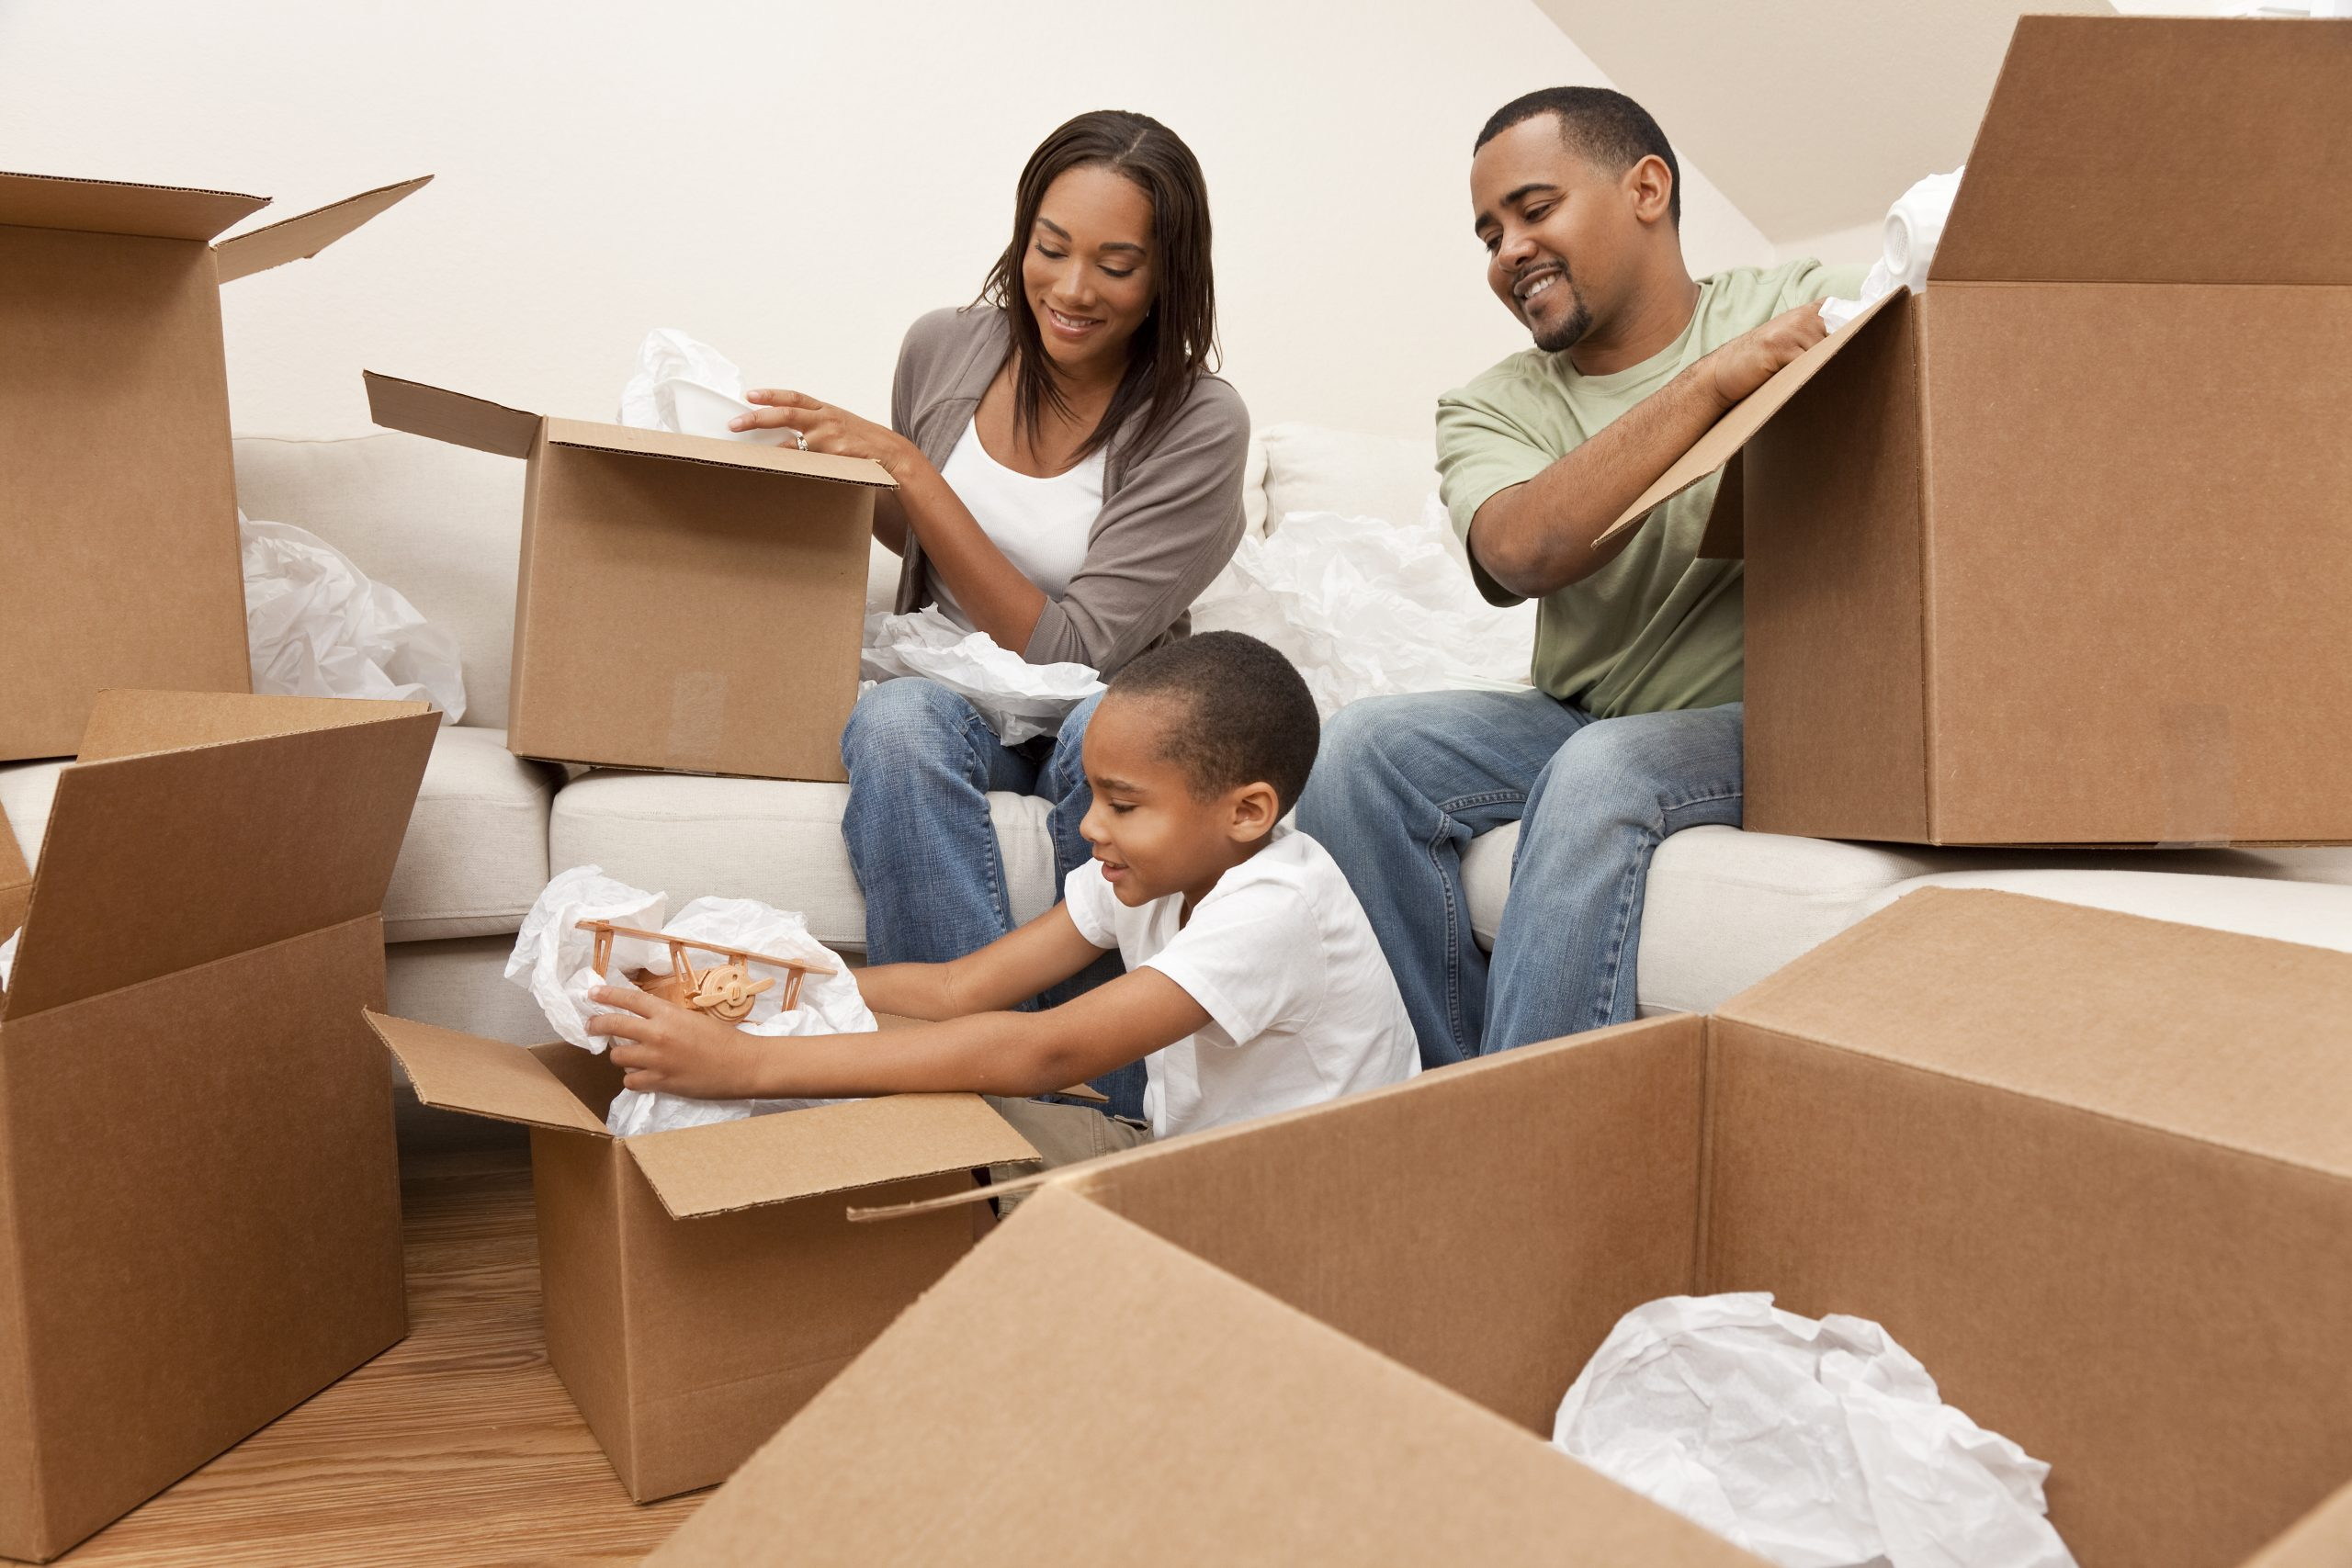 Start with your furniture and then organize your boxes so that you can keep track of where everything is.